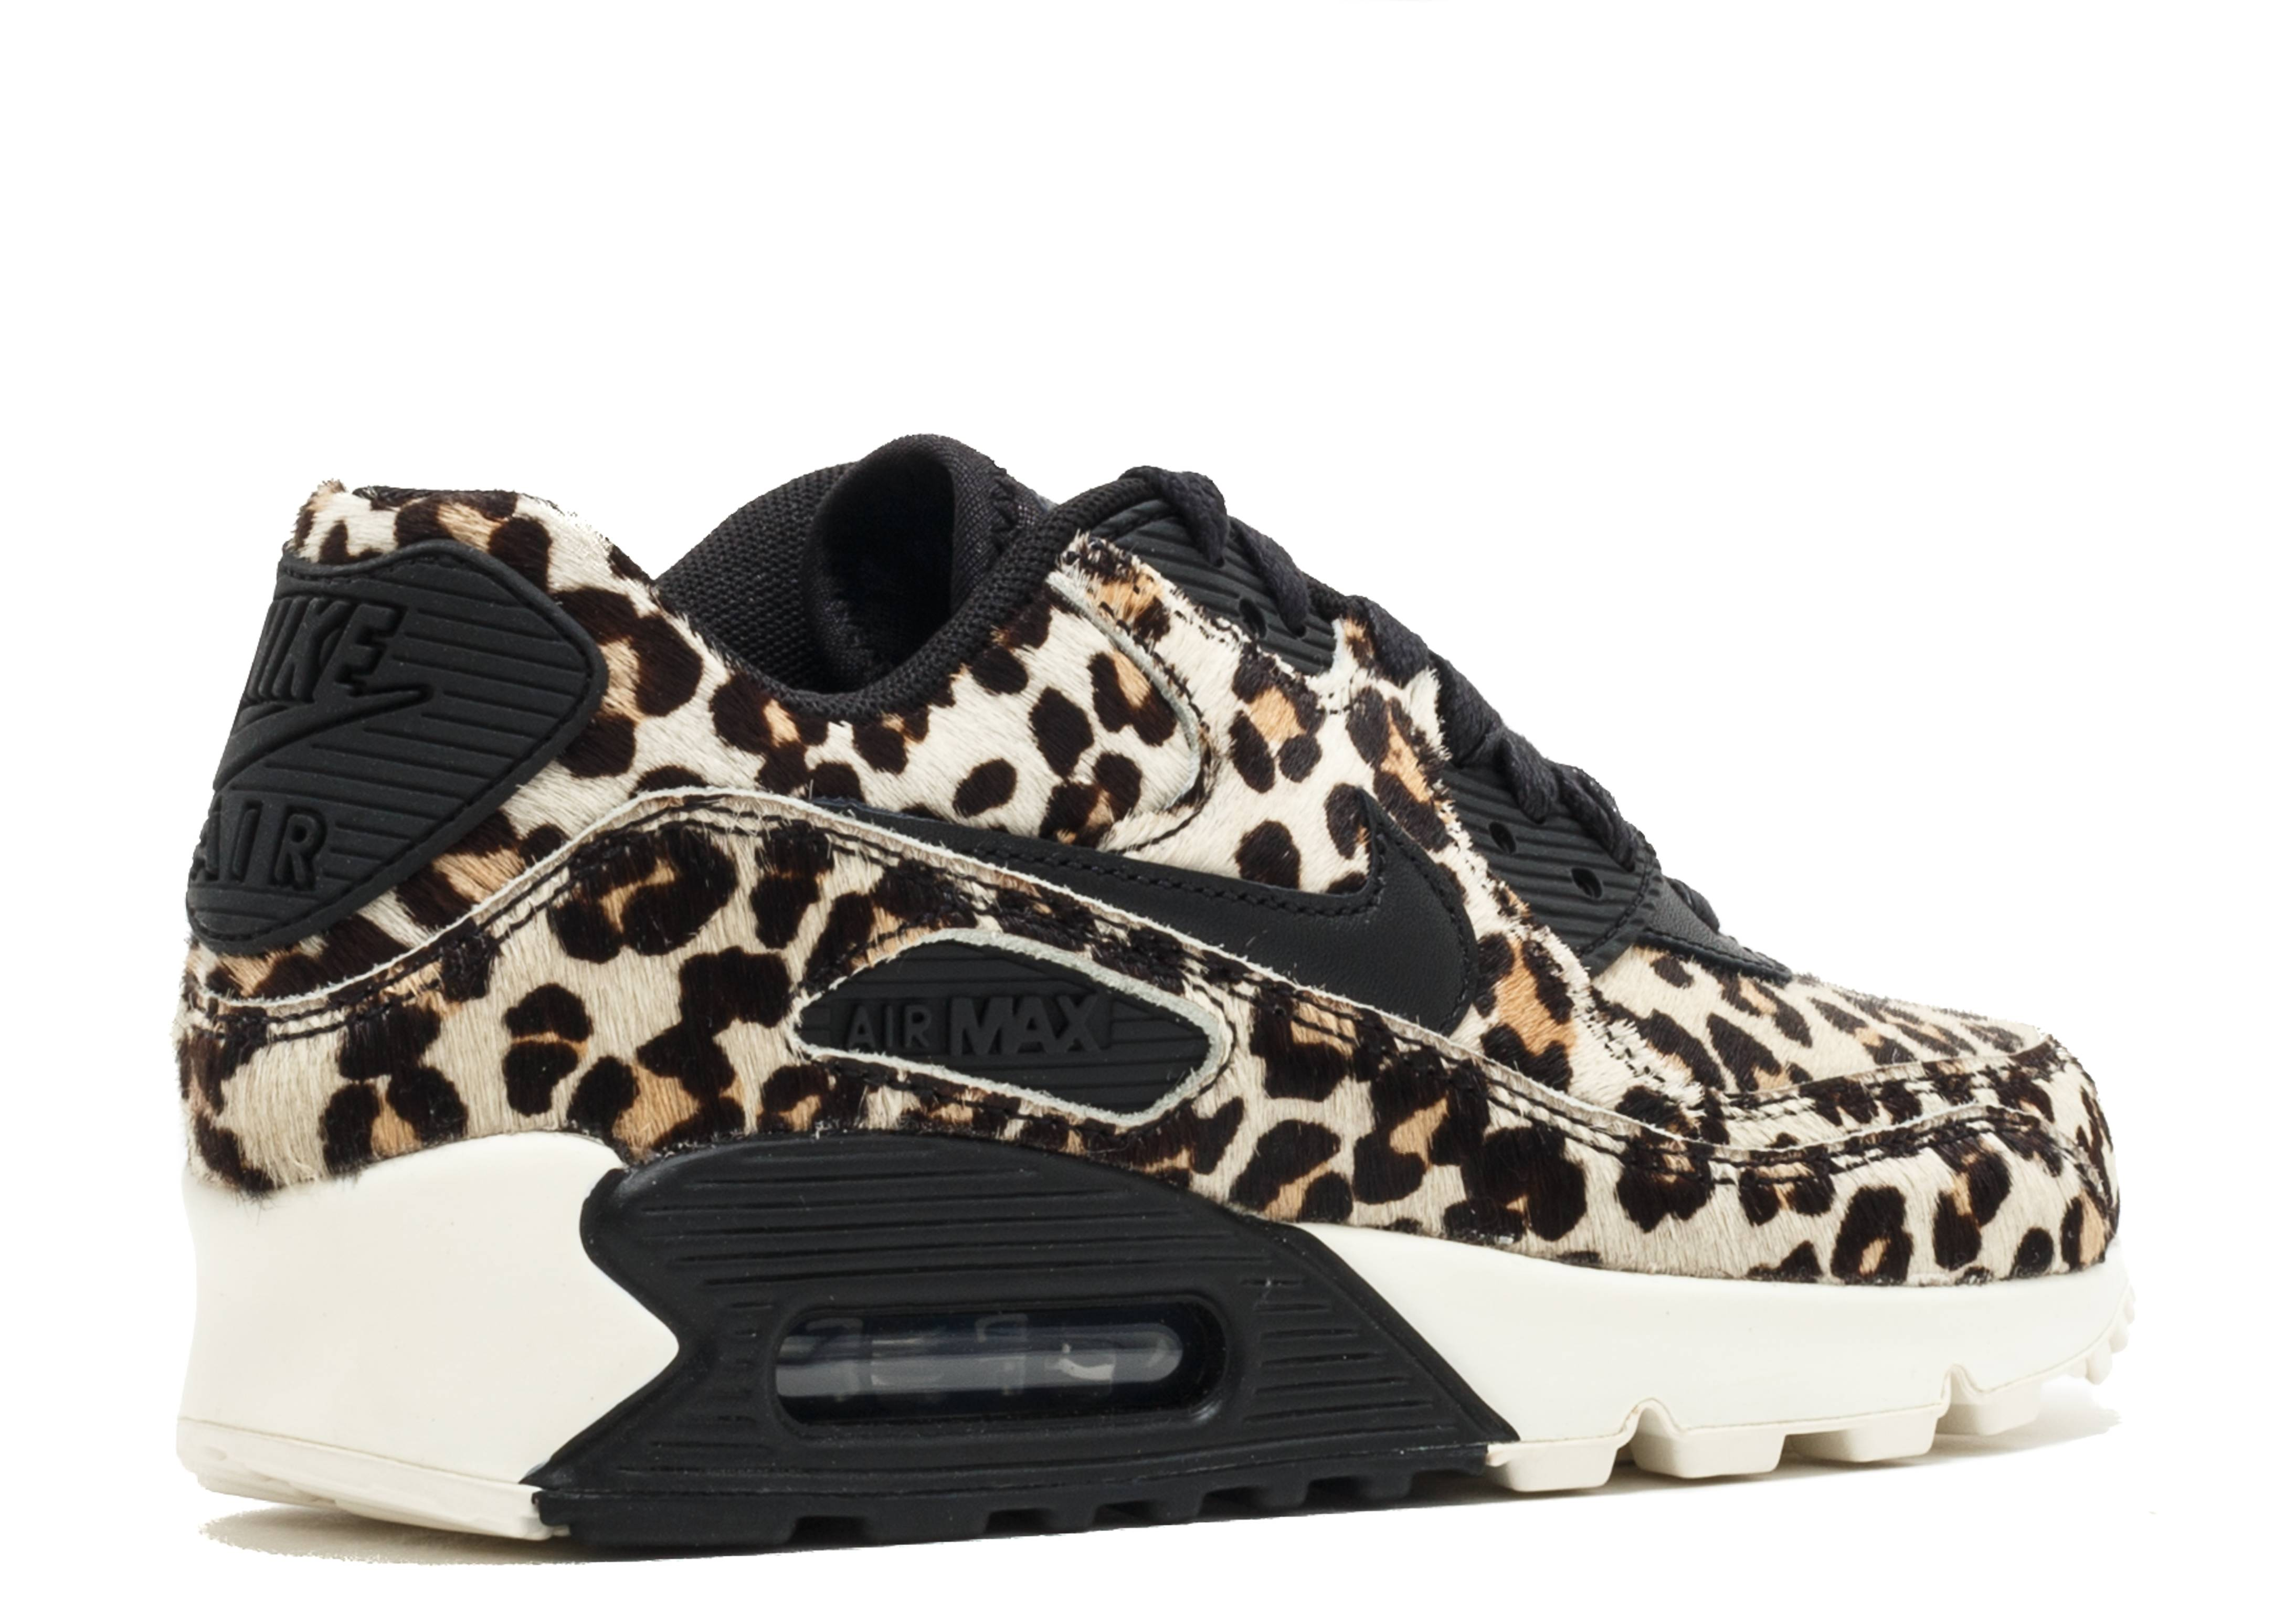 Nike WMNS Air Max 1 Will Is Also Part Of The Leopard Pack